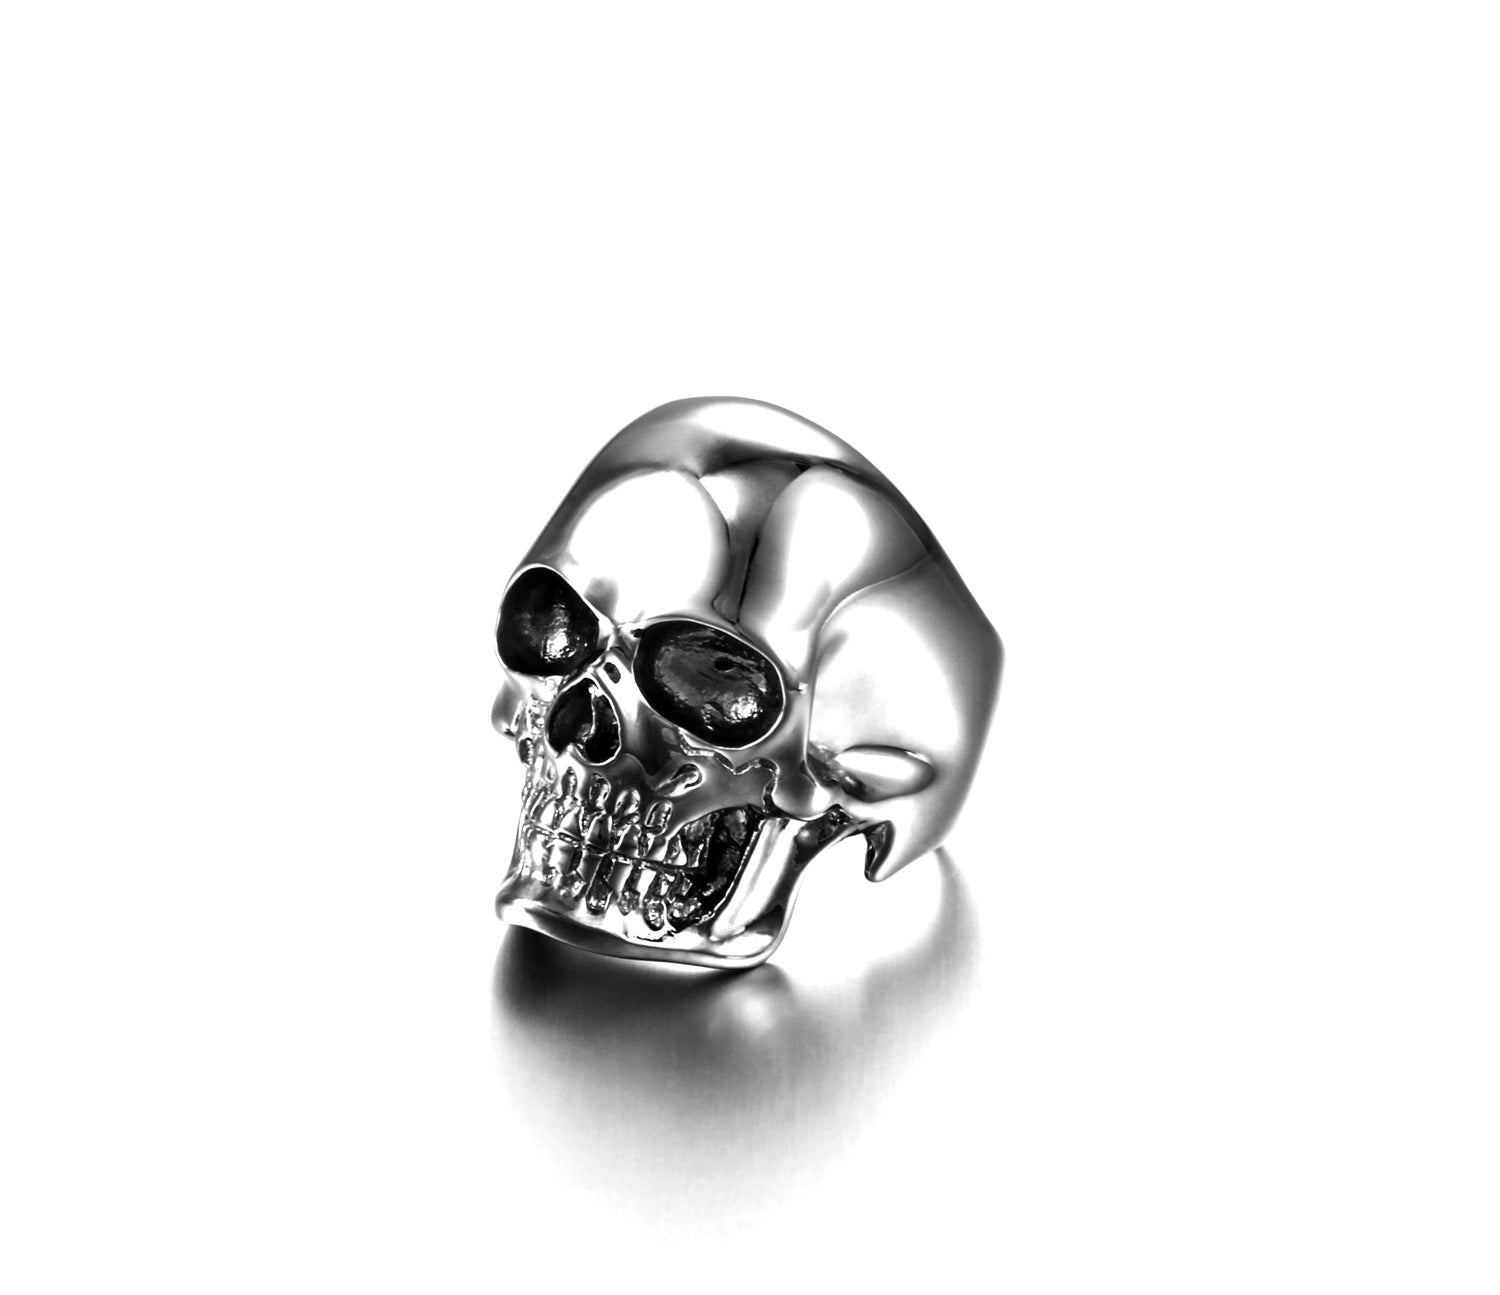 The Master - Black Rutanium Plated Sterling Silver Skull Ring1